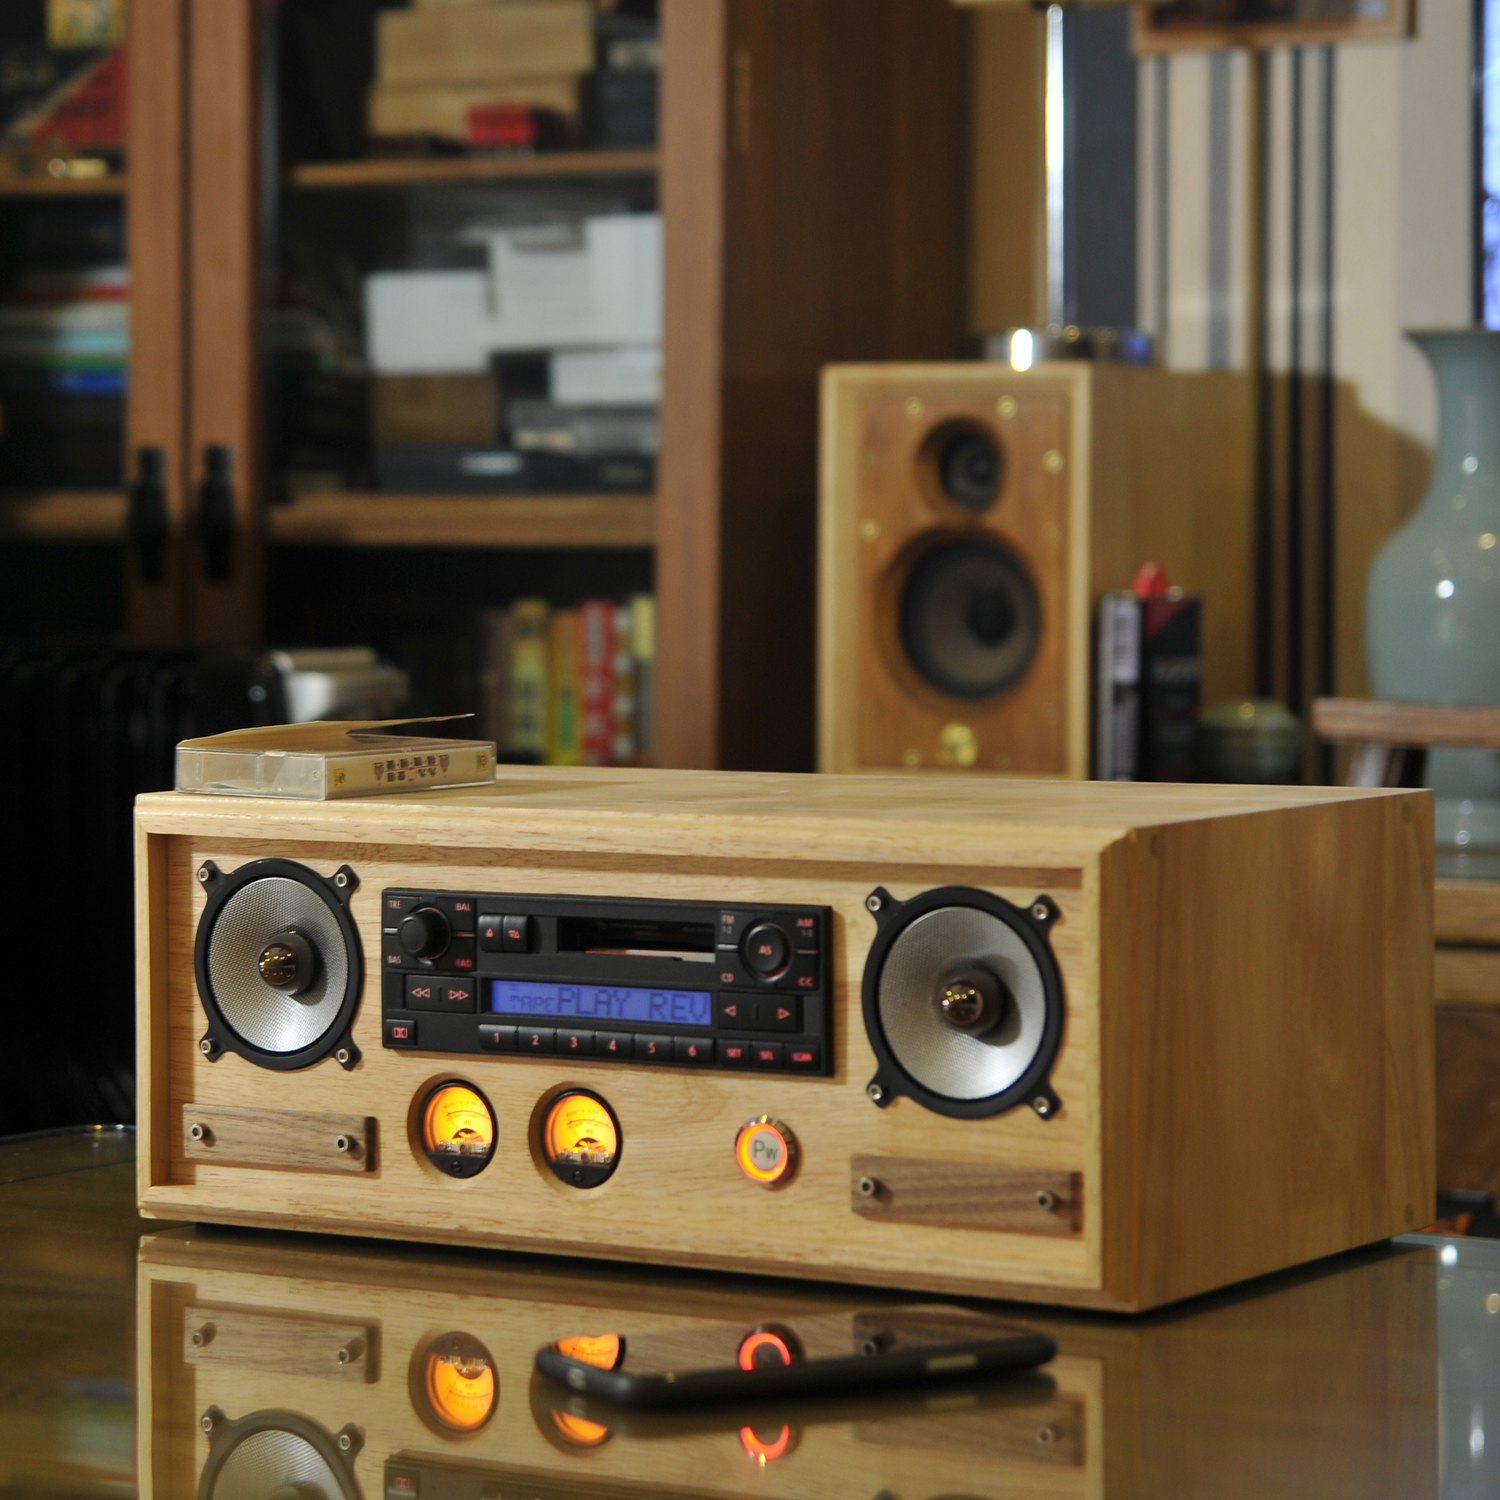 Kenwood Foss Alpine Pioneer single spindle CD cassette machine to change home audio special custom edition All box